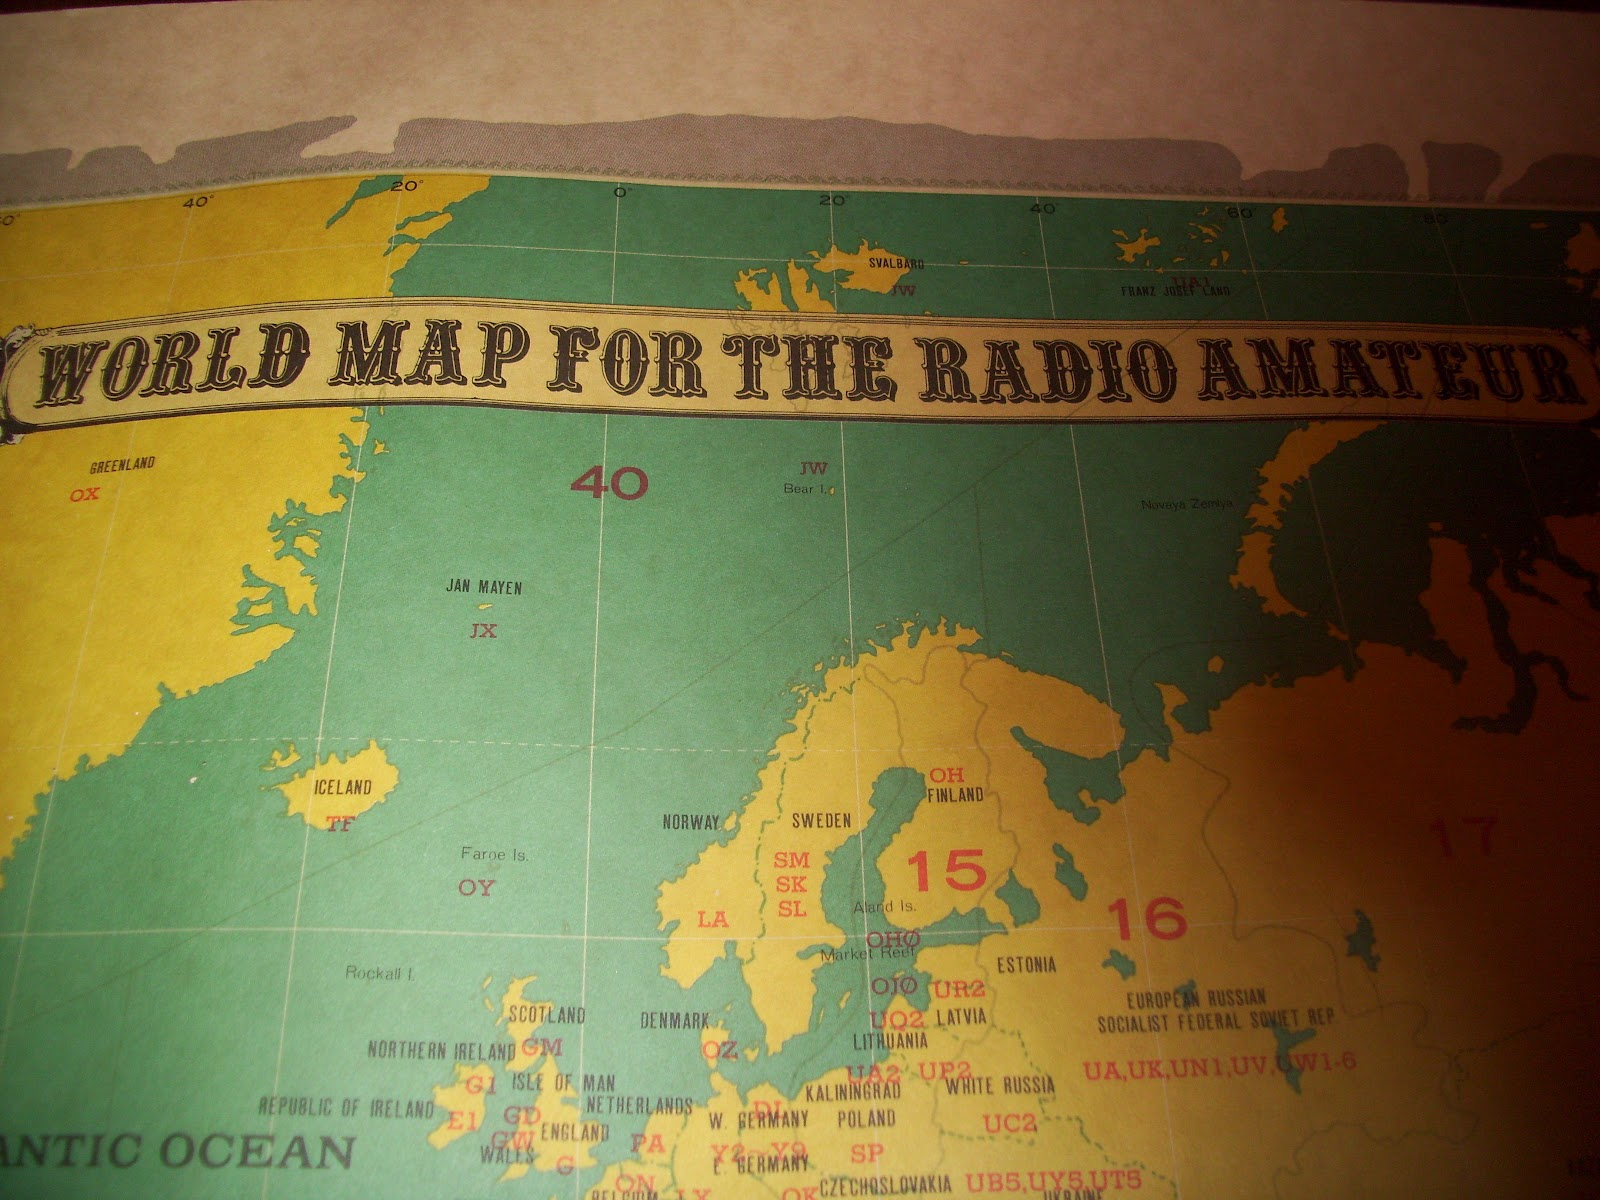 My favorite things world map for the radio amateur world map for the radio amateur gumiabroncs Choice Image